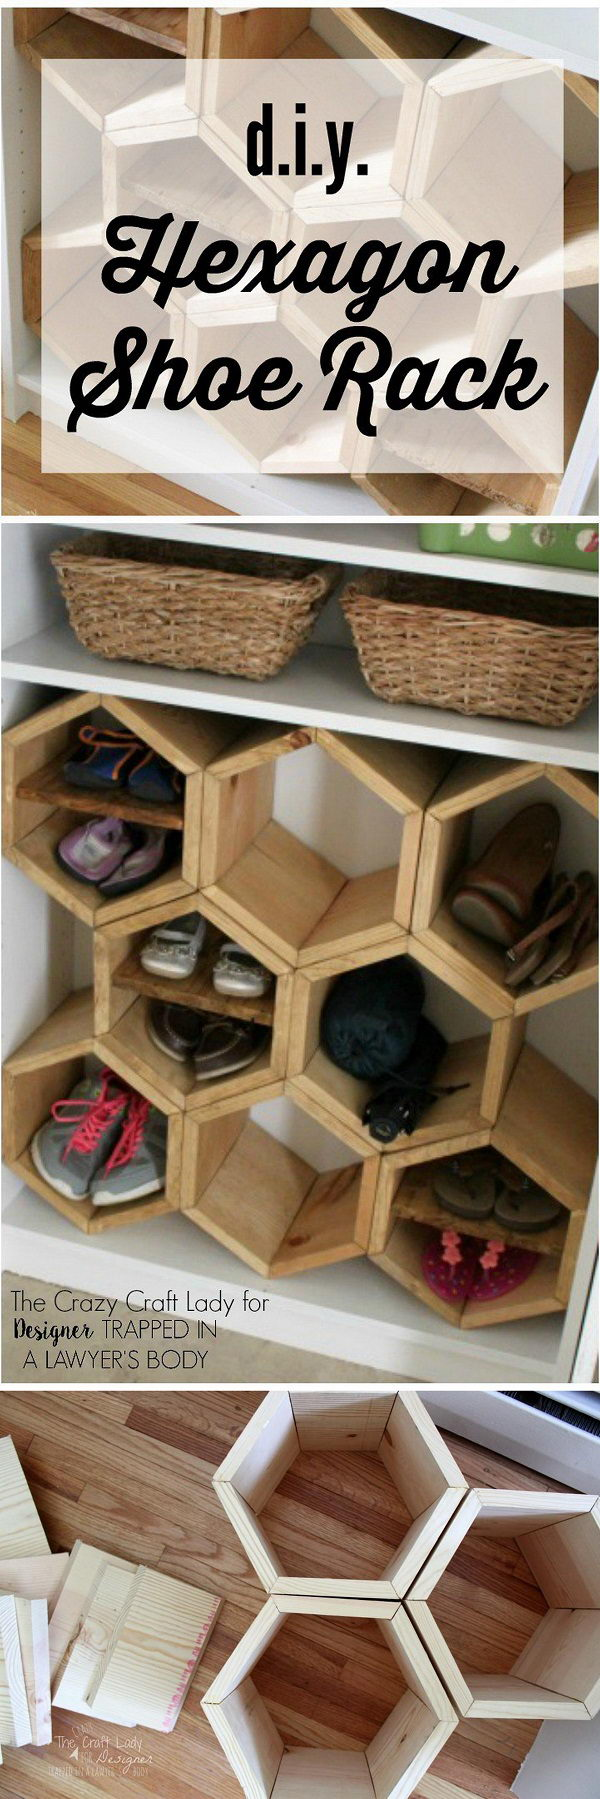 Hexagon Shoe Rack.